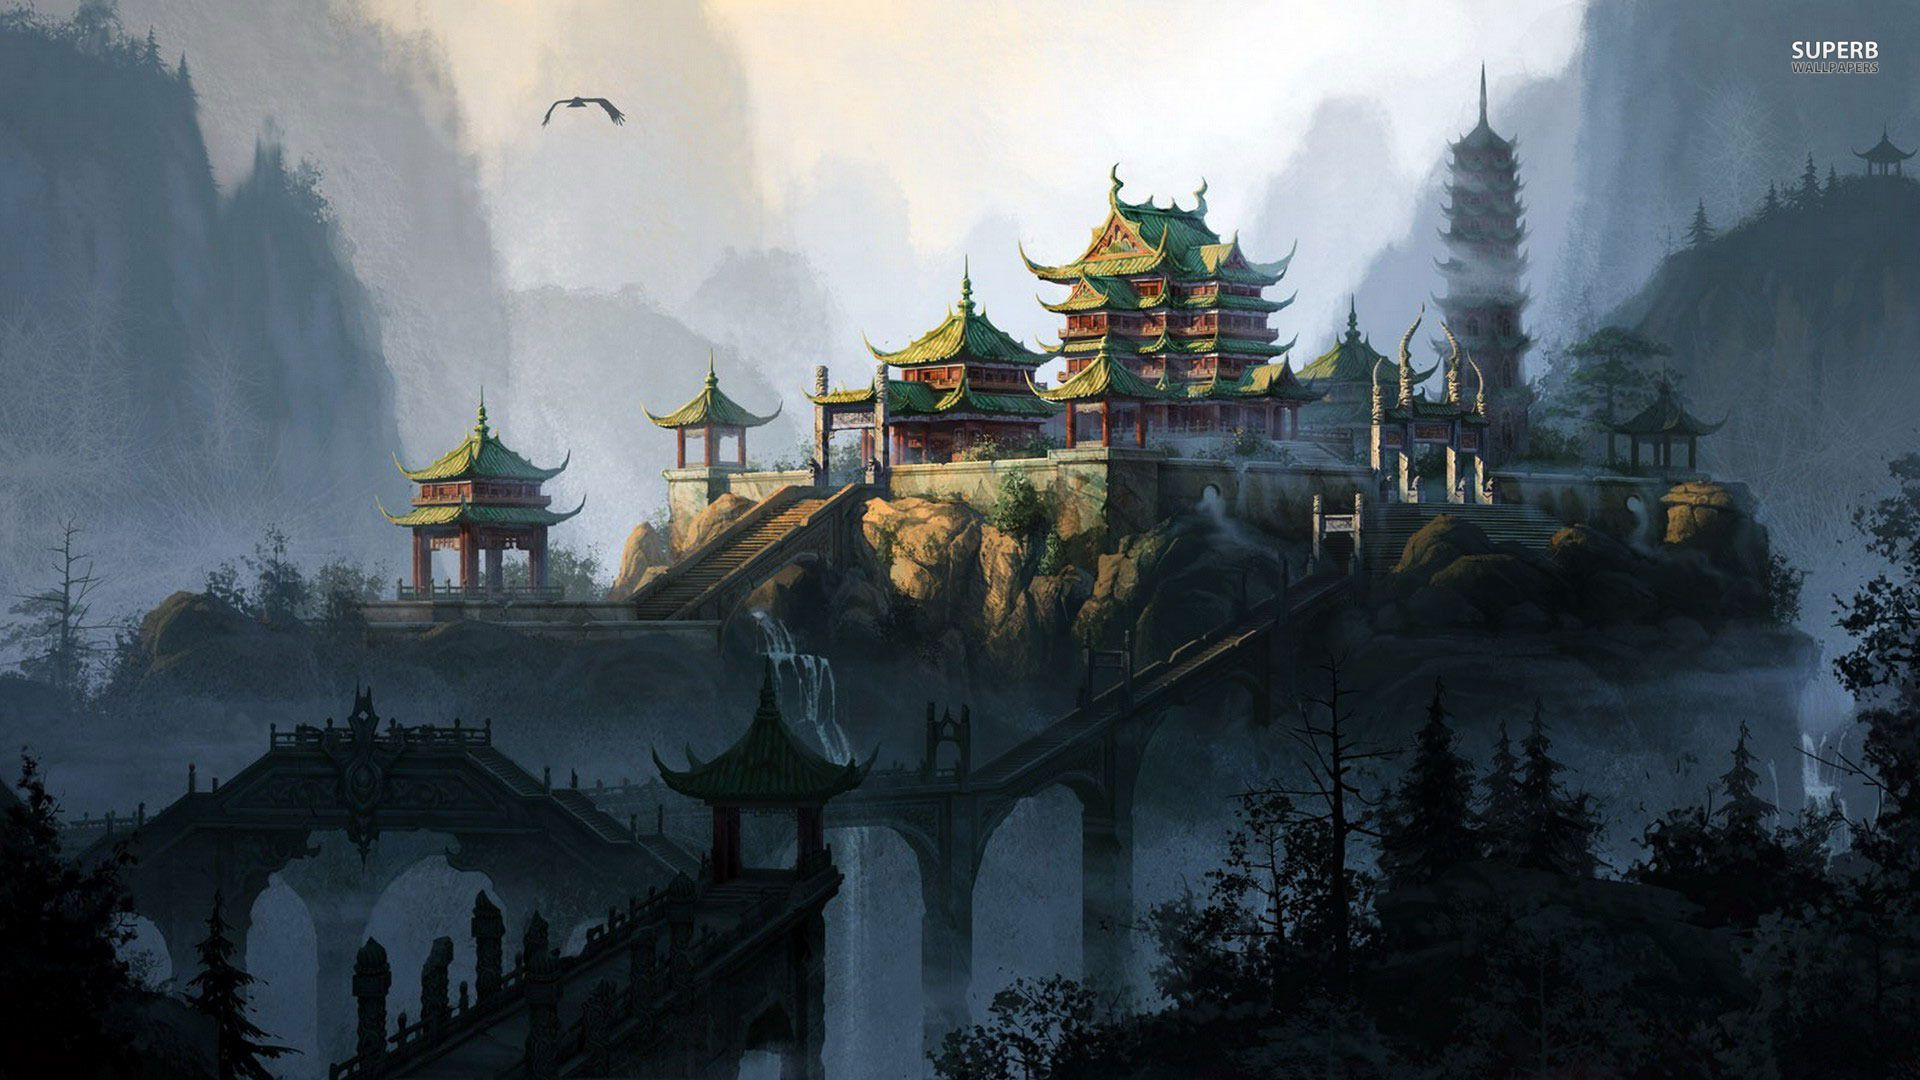 Asian Pagoda Temple, Illustration Cool Buildings and